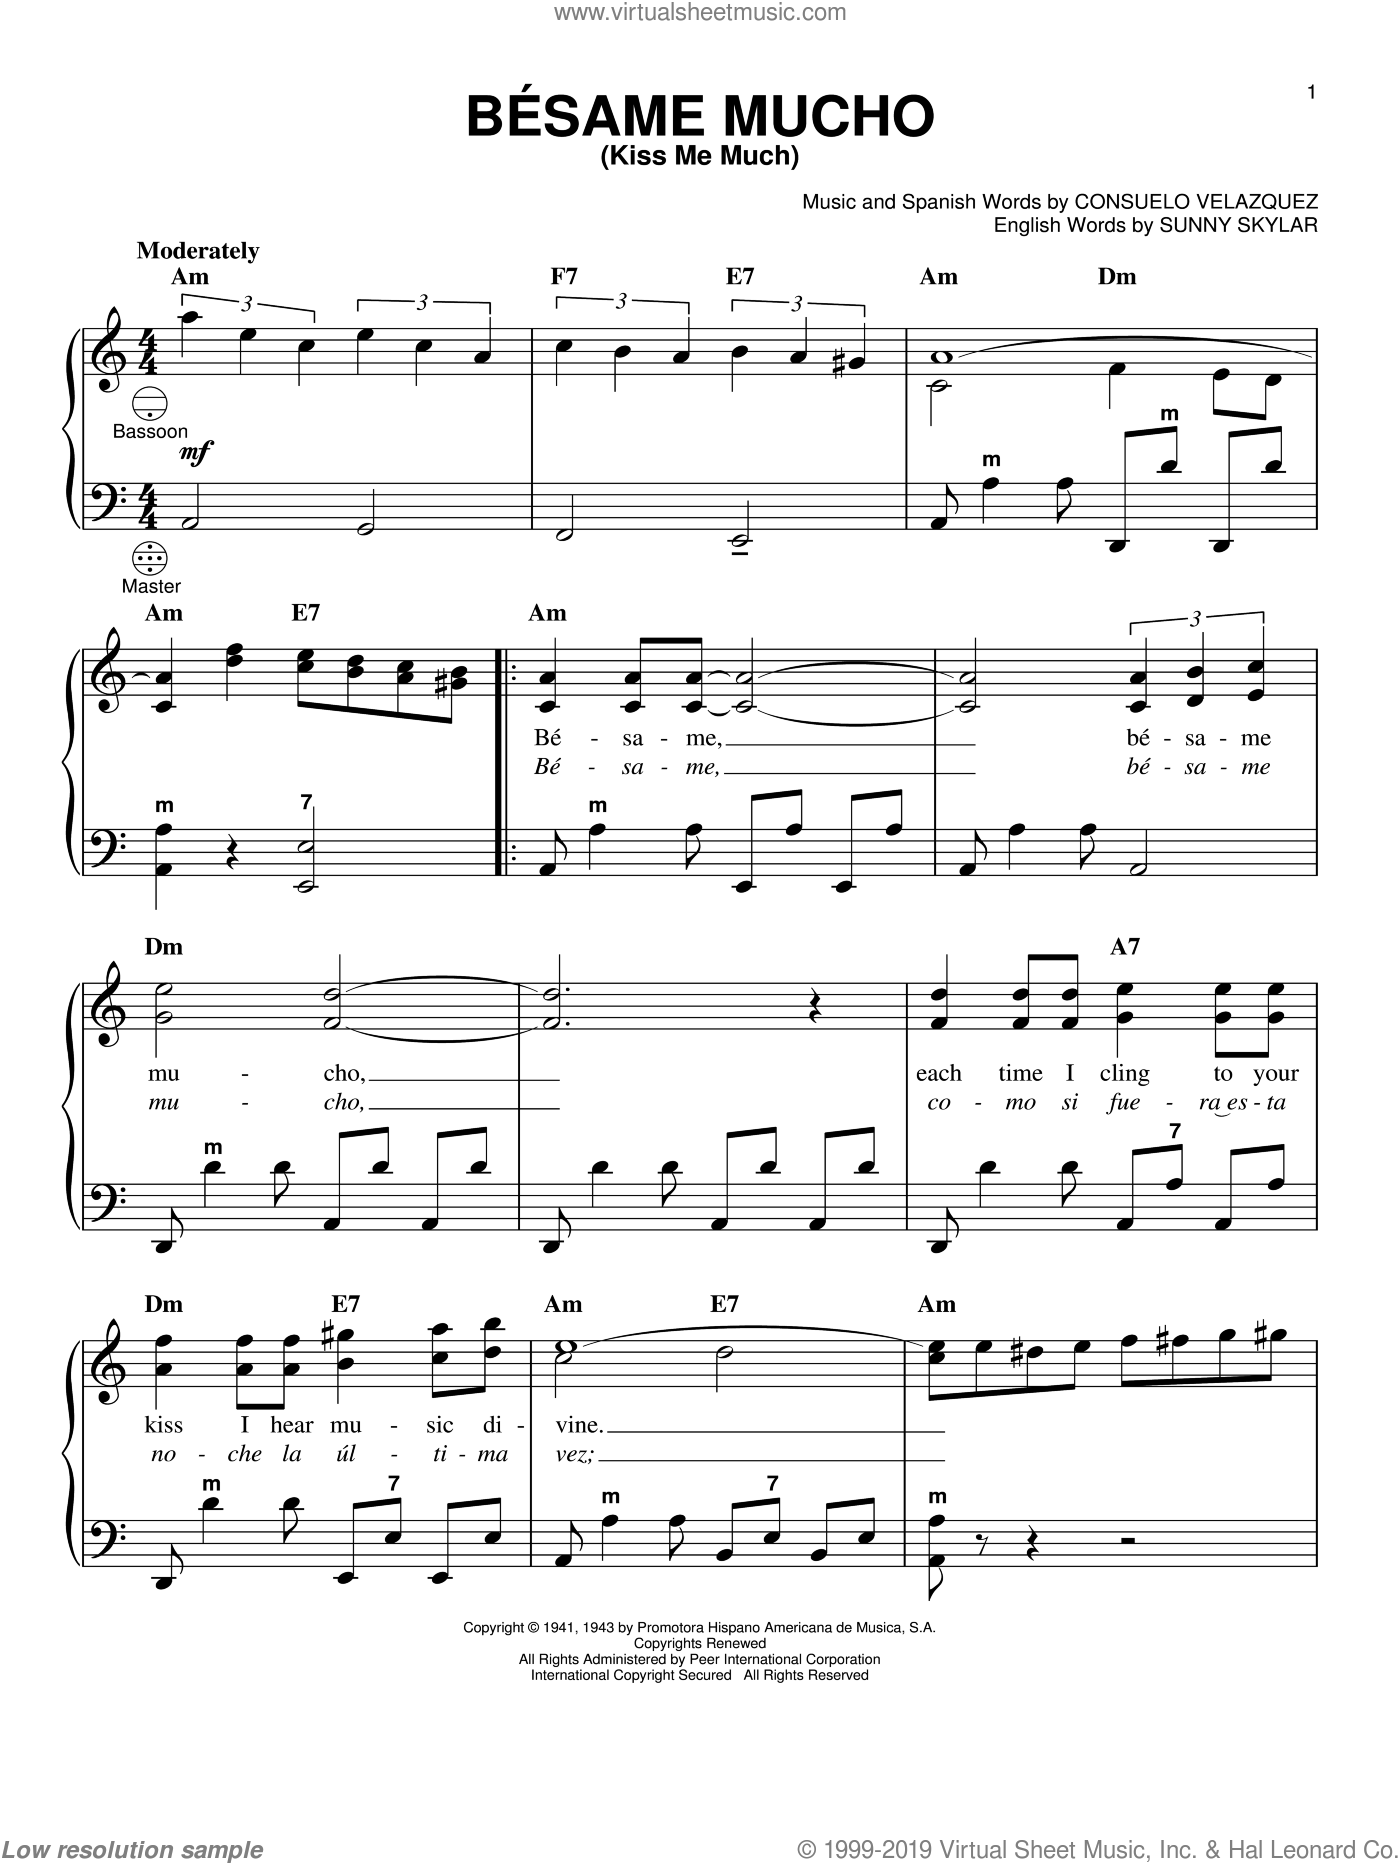 Besame Mucho (Kiss Me Much) sheet music for accordion by Sunny Skylar